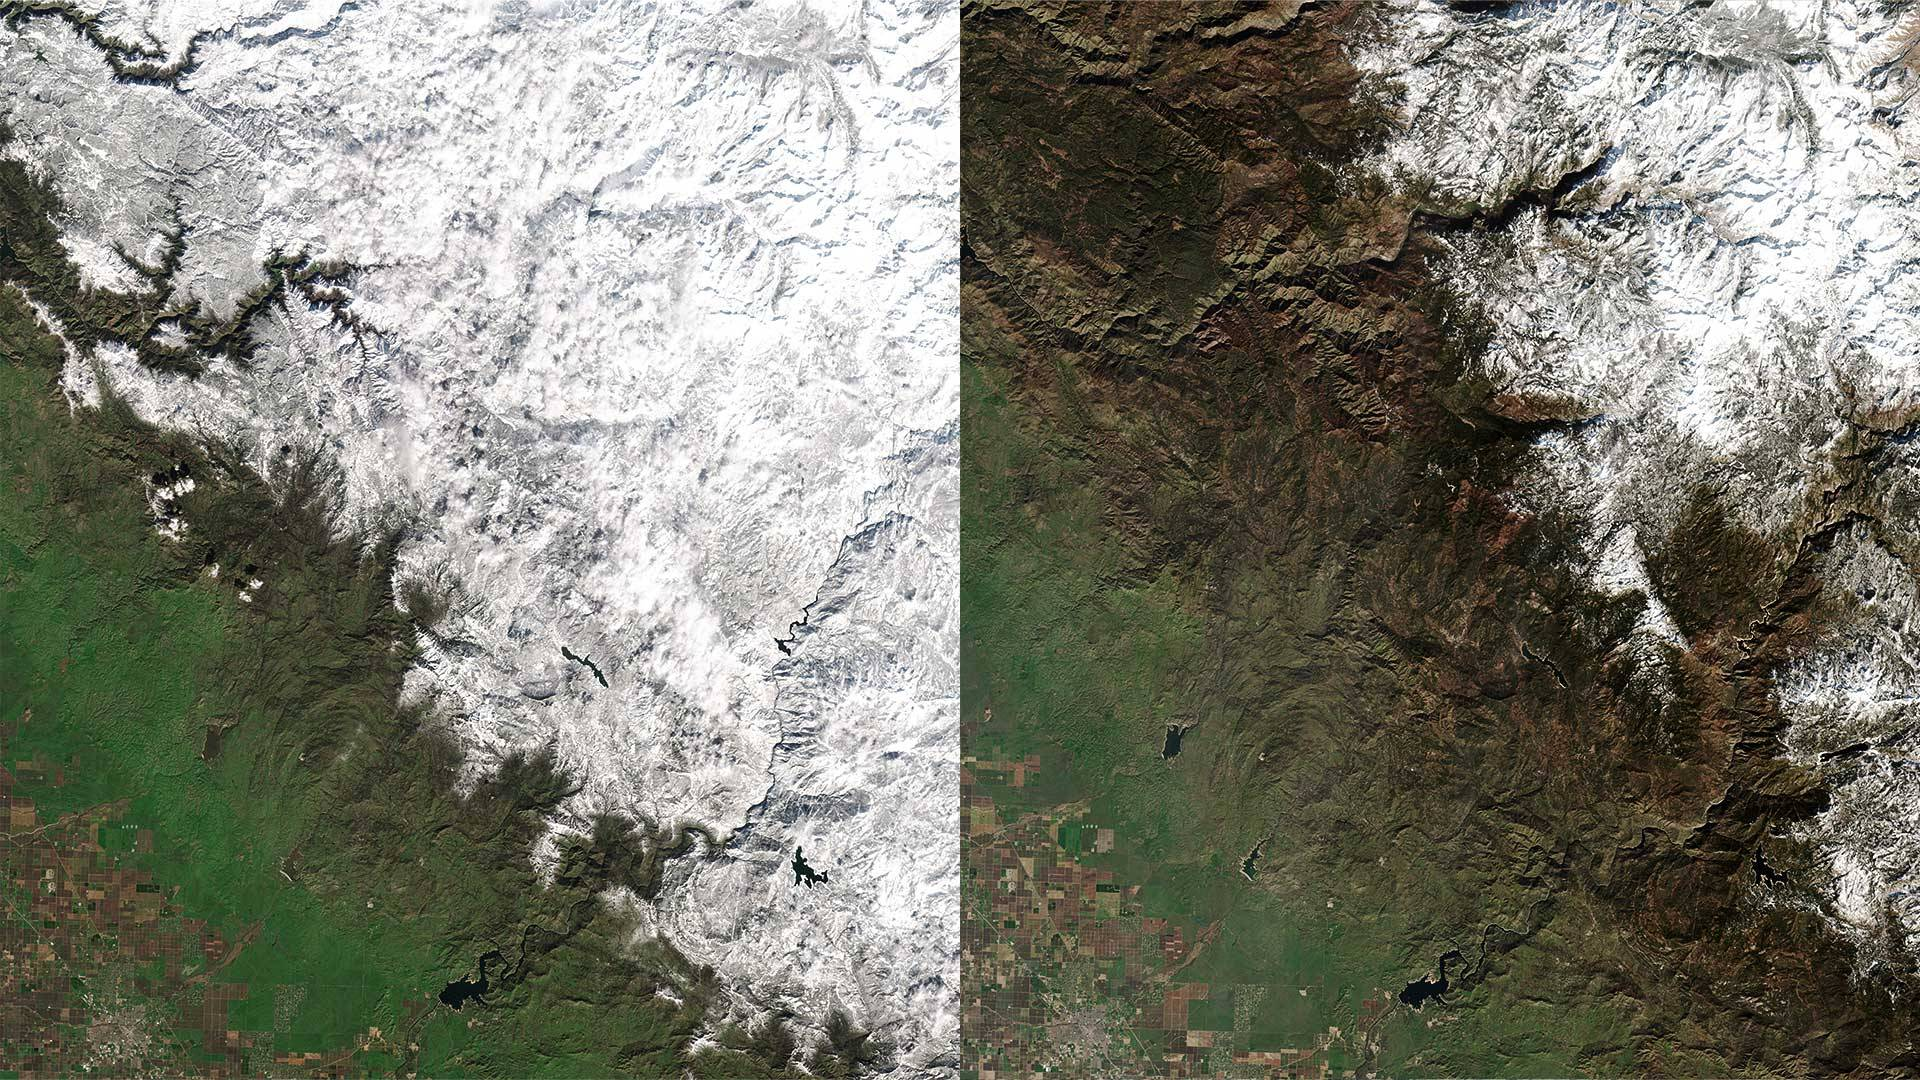 Satellite view of Yosemite Valley. The 'before' image was taken Feb. 6, 2019; the 'after' image on Feb. 1, 2020. Planet